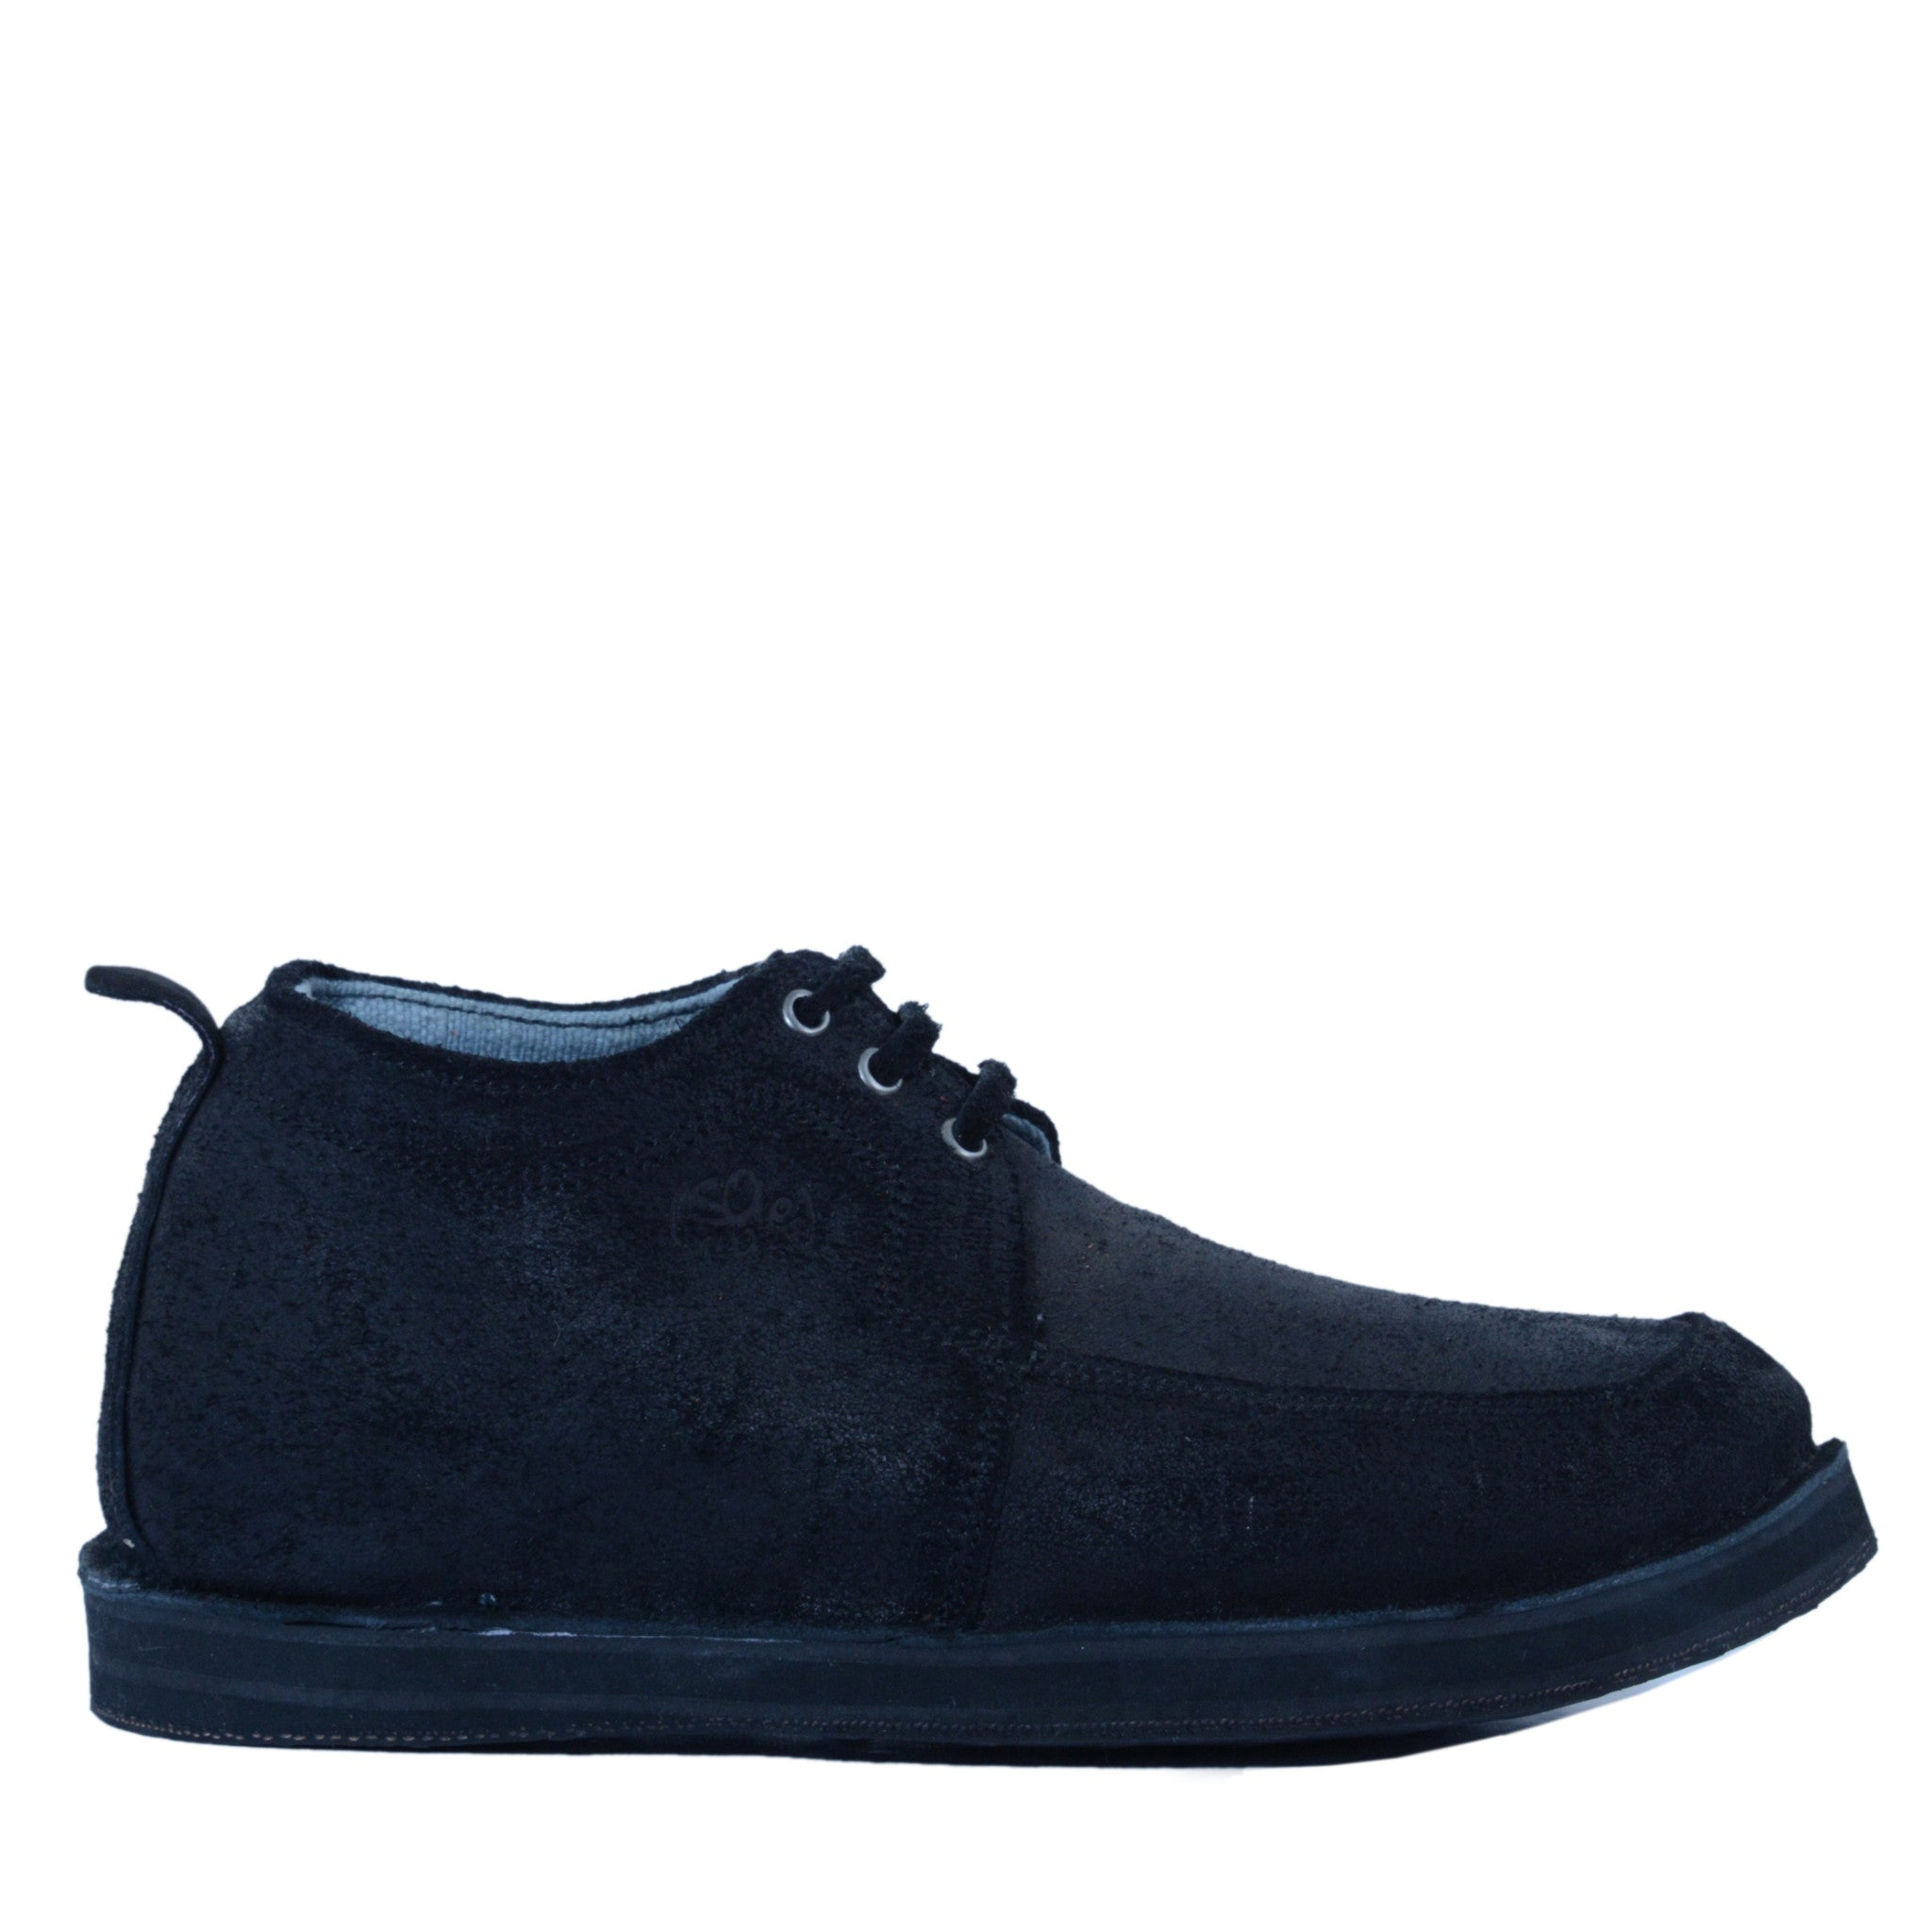 solerebels Black range ridin upstart 2 Lace-Ups